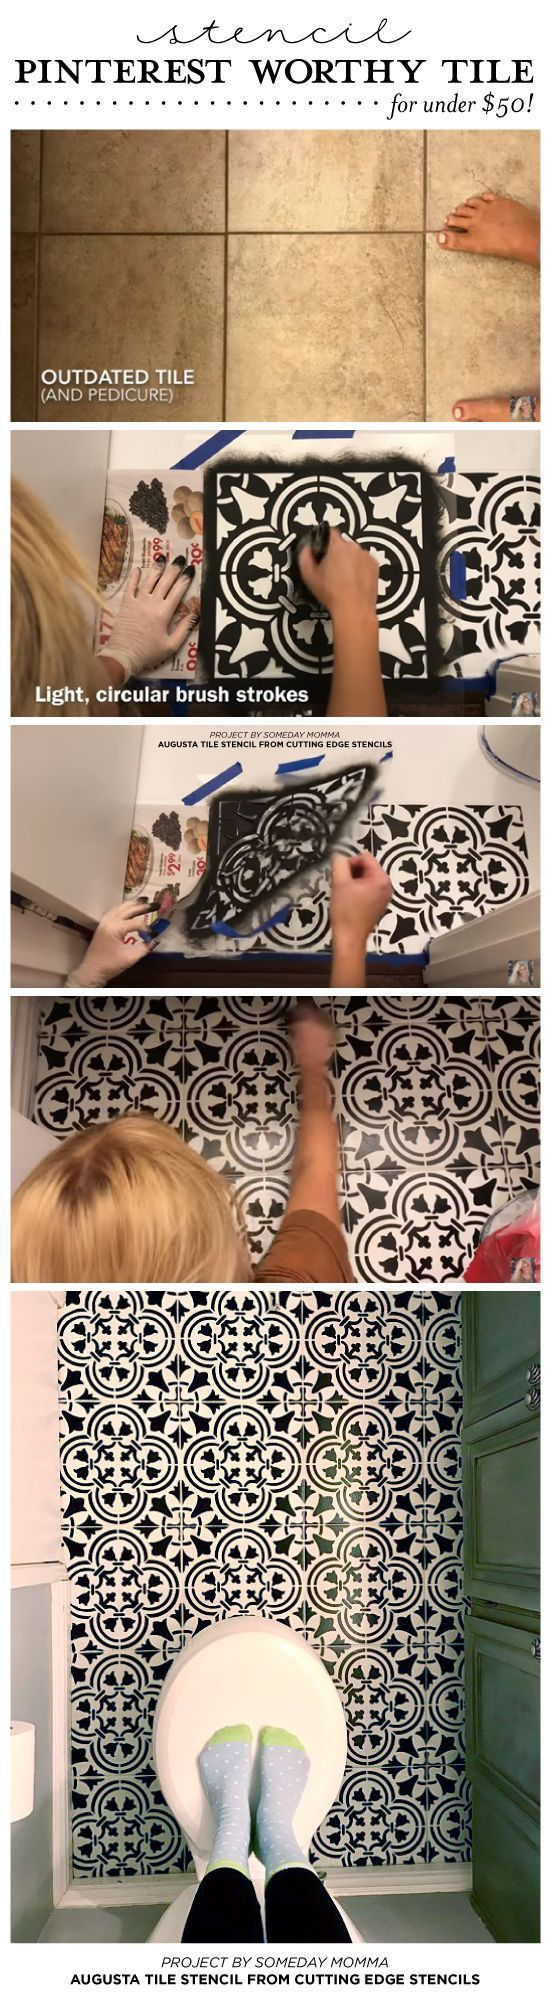 30 awesome flooring ideas for every room ceramic tile floors 30 awesome flooring ideas for every room ceramic tile floors patchwork tiles and cutting edge stencils dailygadgetfo Image collections